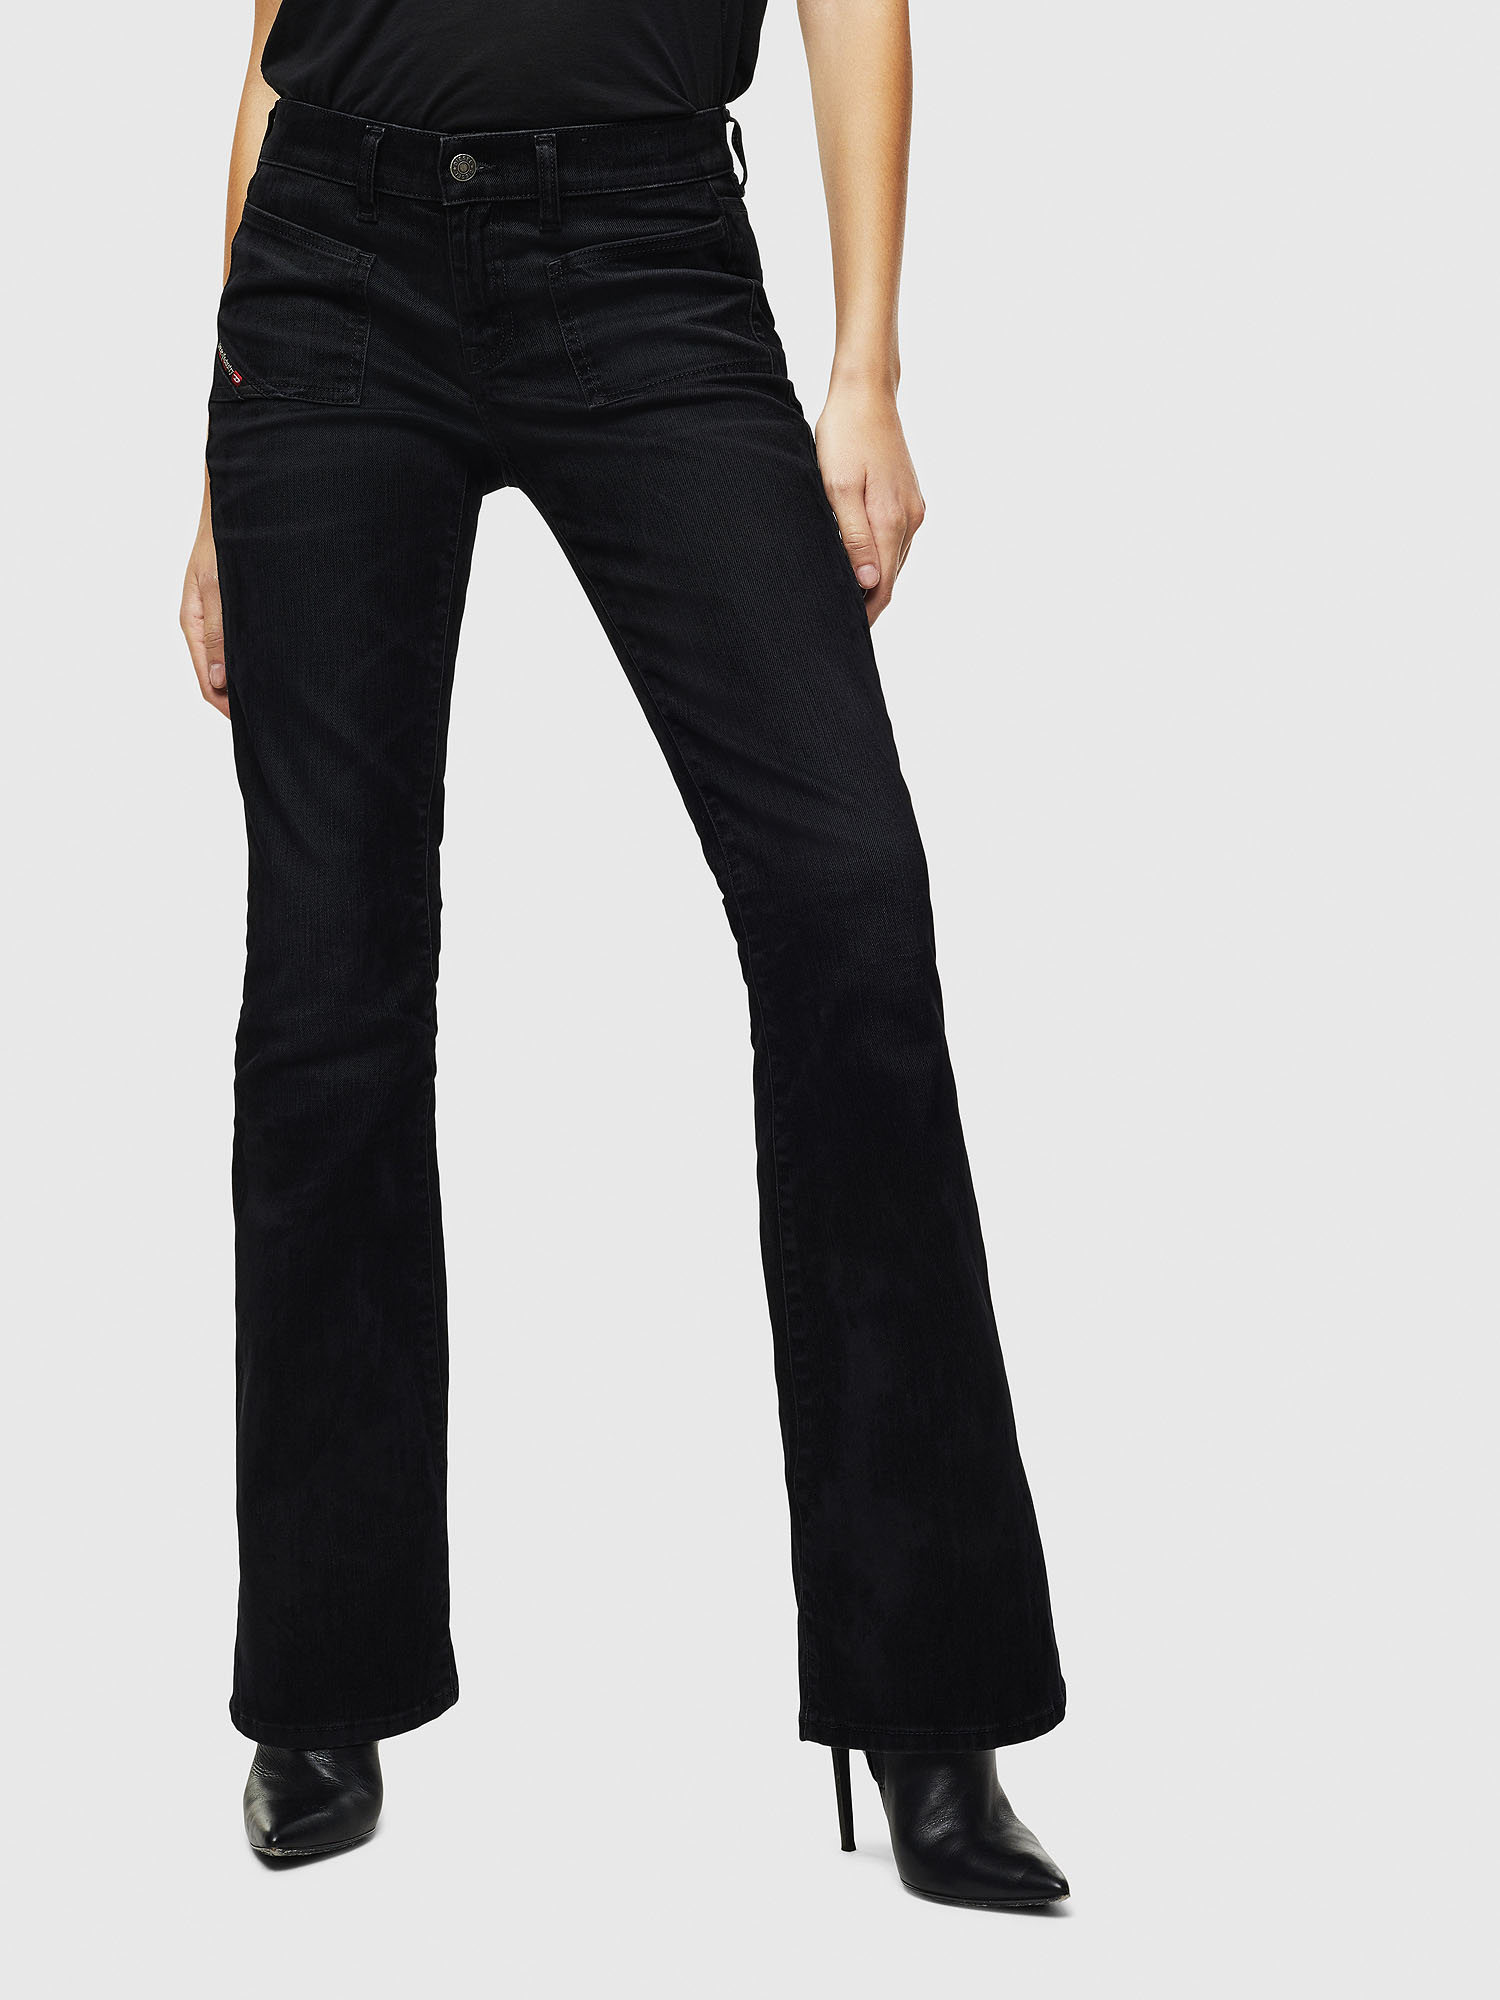 Diesel - D-Ebbey 0091I, Black/Dark grey - Jeans - Image 1